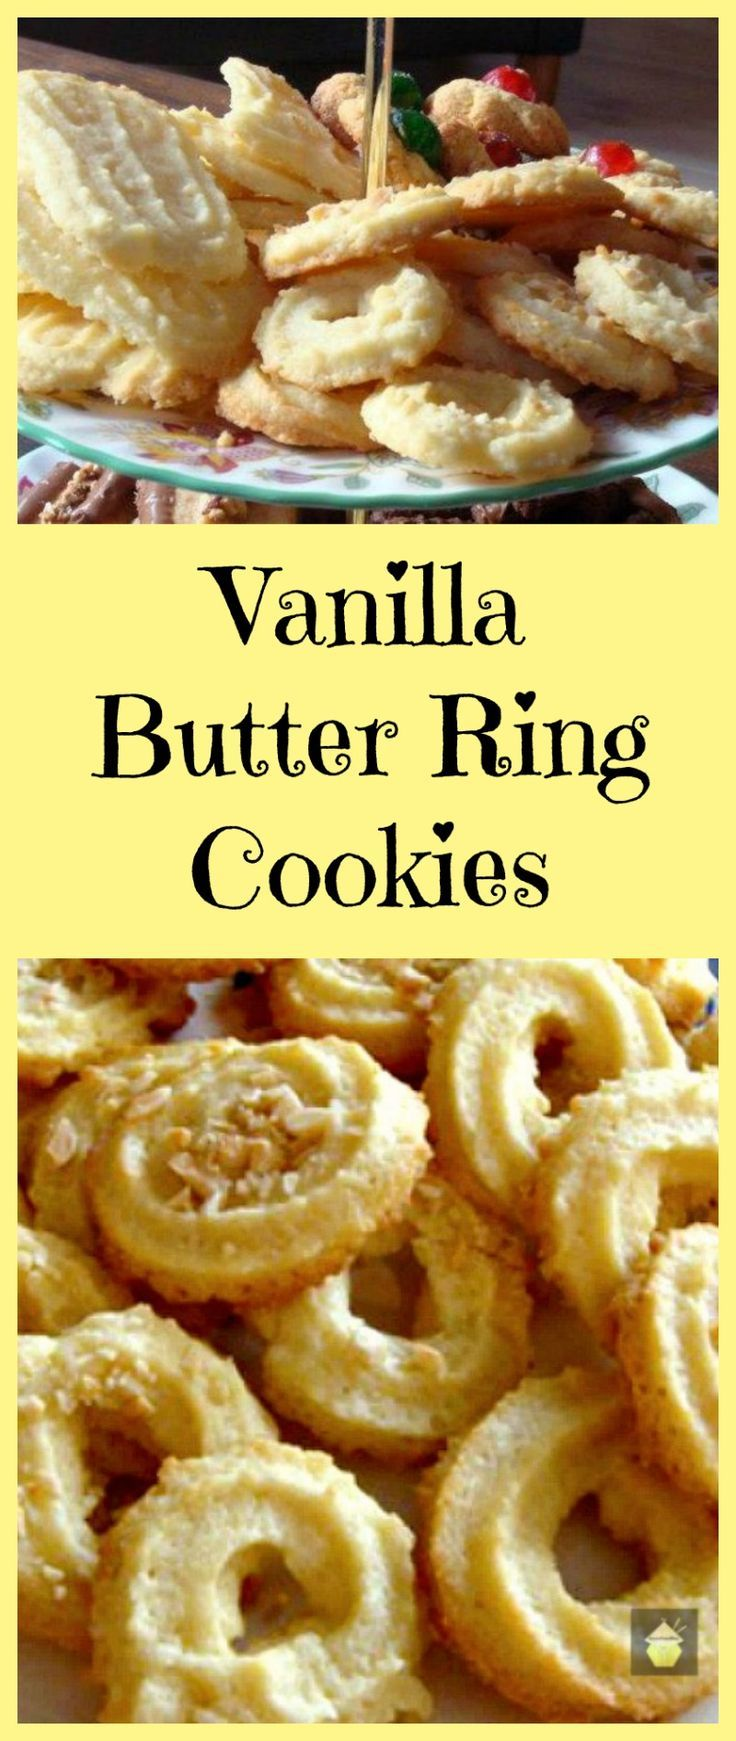 Vanilla Butter Ring Cookies. These little cookies have a wonderful vanilla flavor and melt in your mouth.